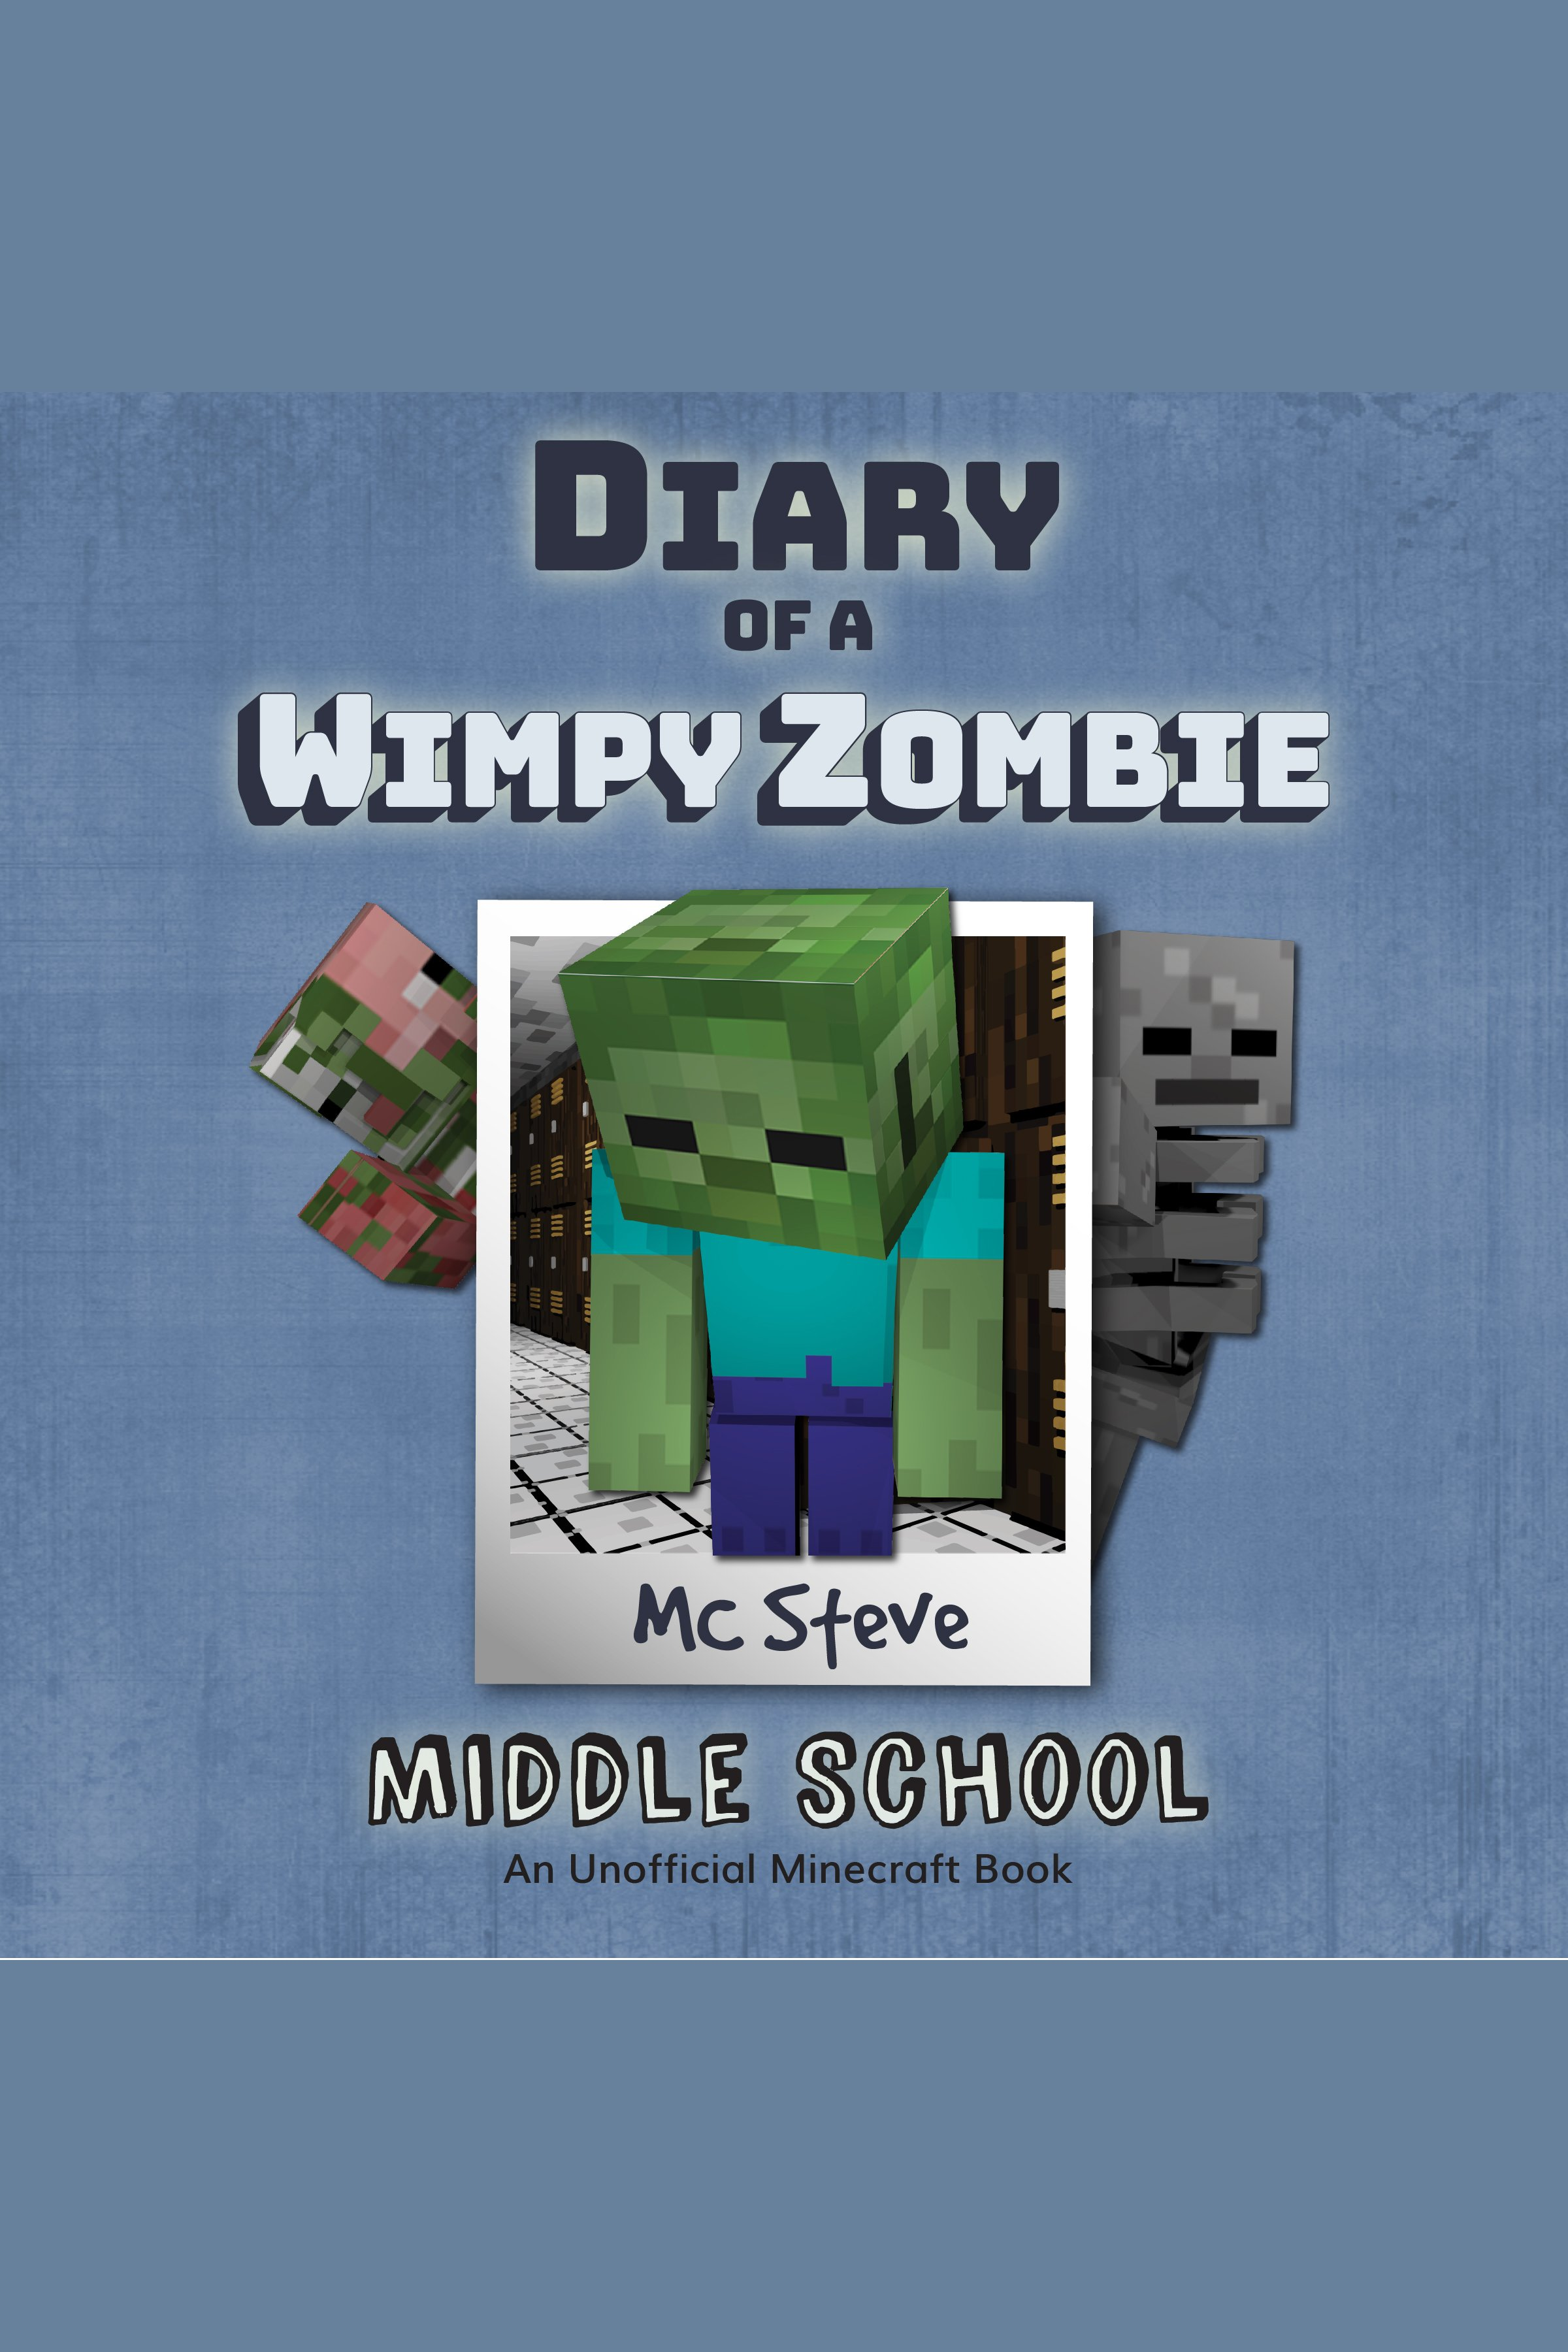 Diary Of A Minecraft Wimpy Zombie Book 1: Middle School (An Unofficial Minecraft Book)